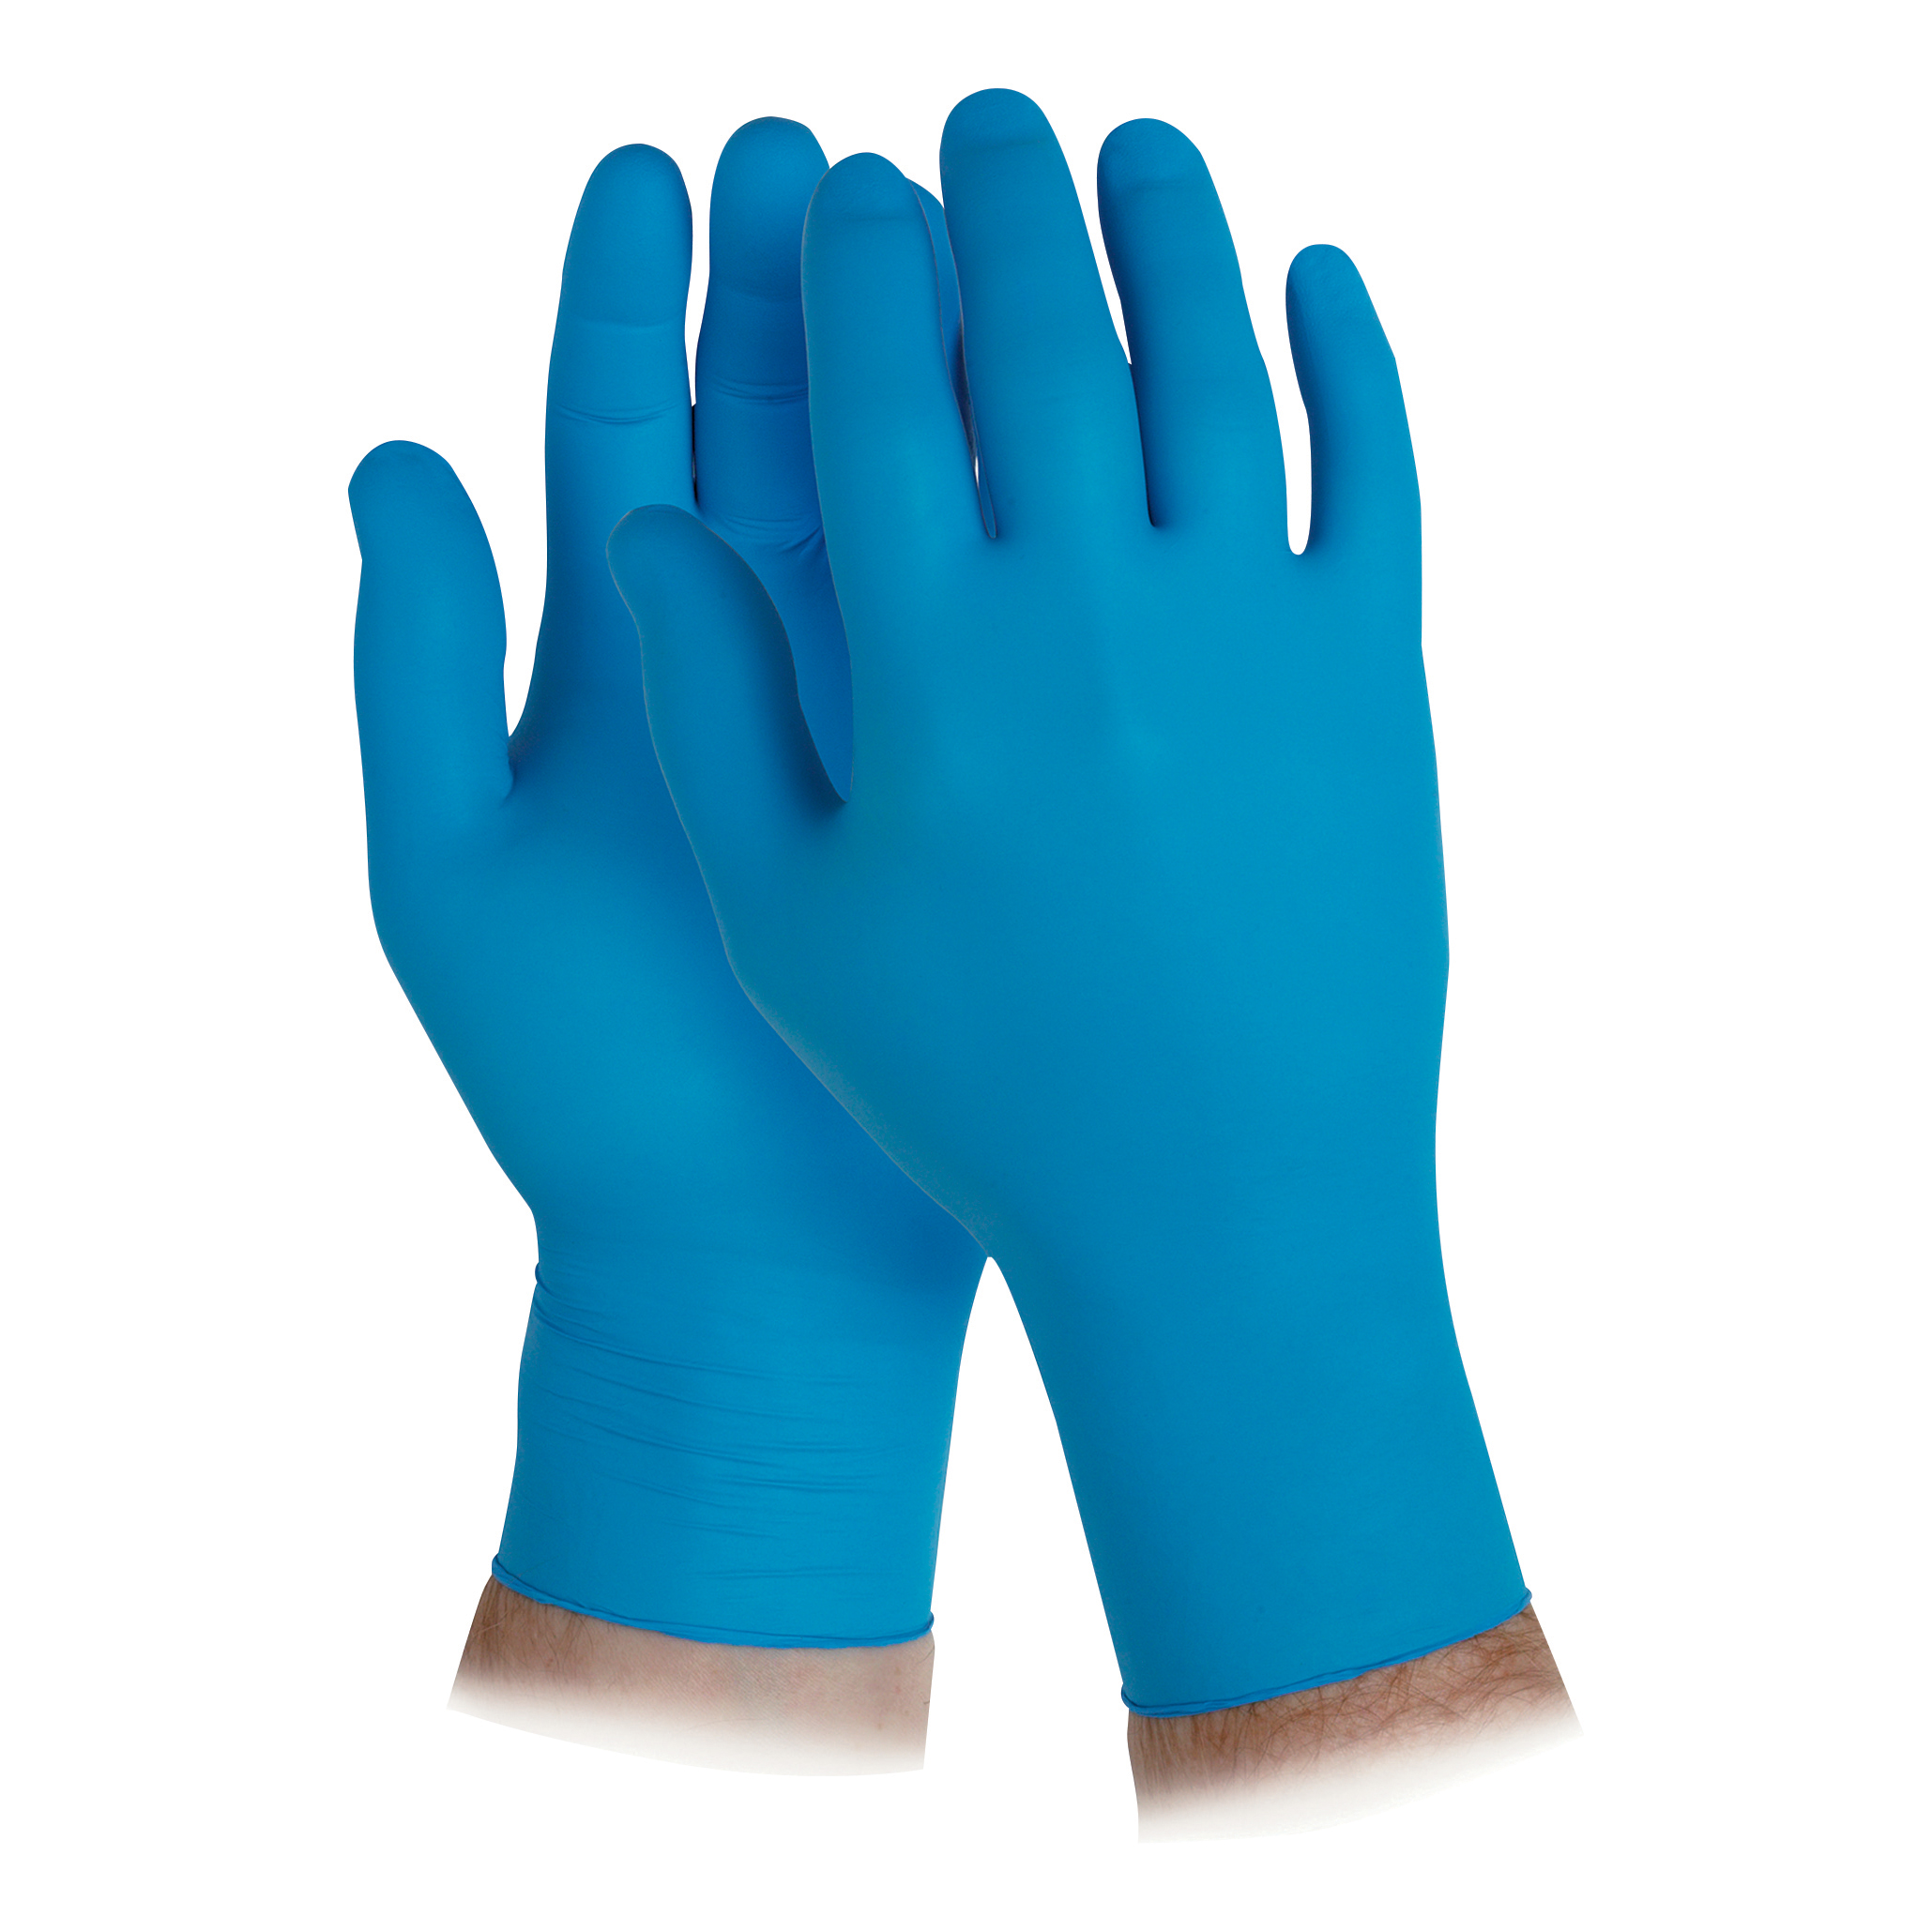 KleenGuard G10 Nitrile Gloves Powder Free Natural Rubber Large Arctic Blue Ref 90098 Box 200